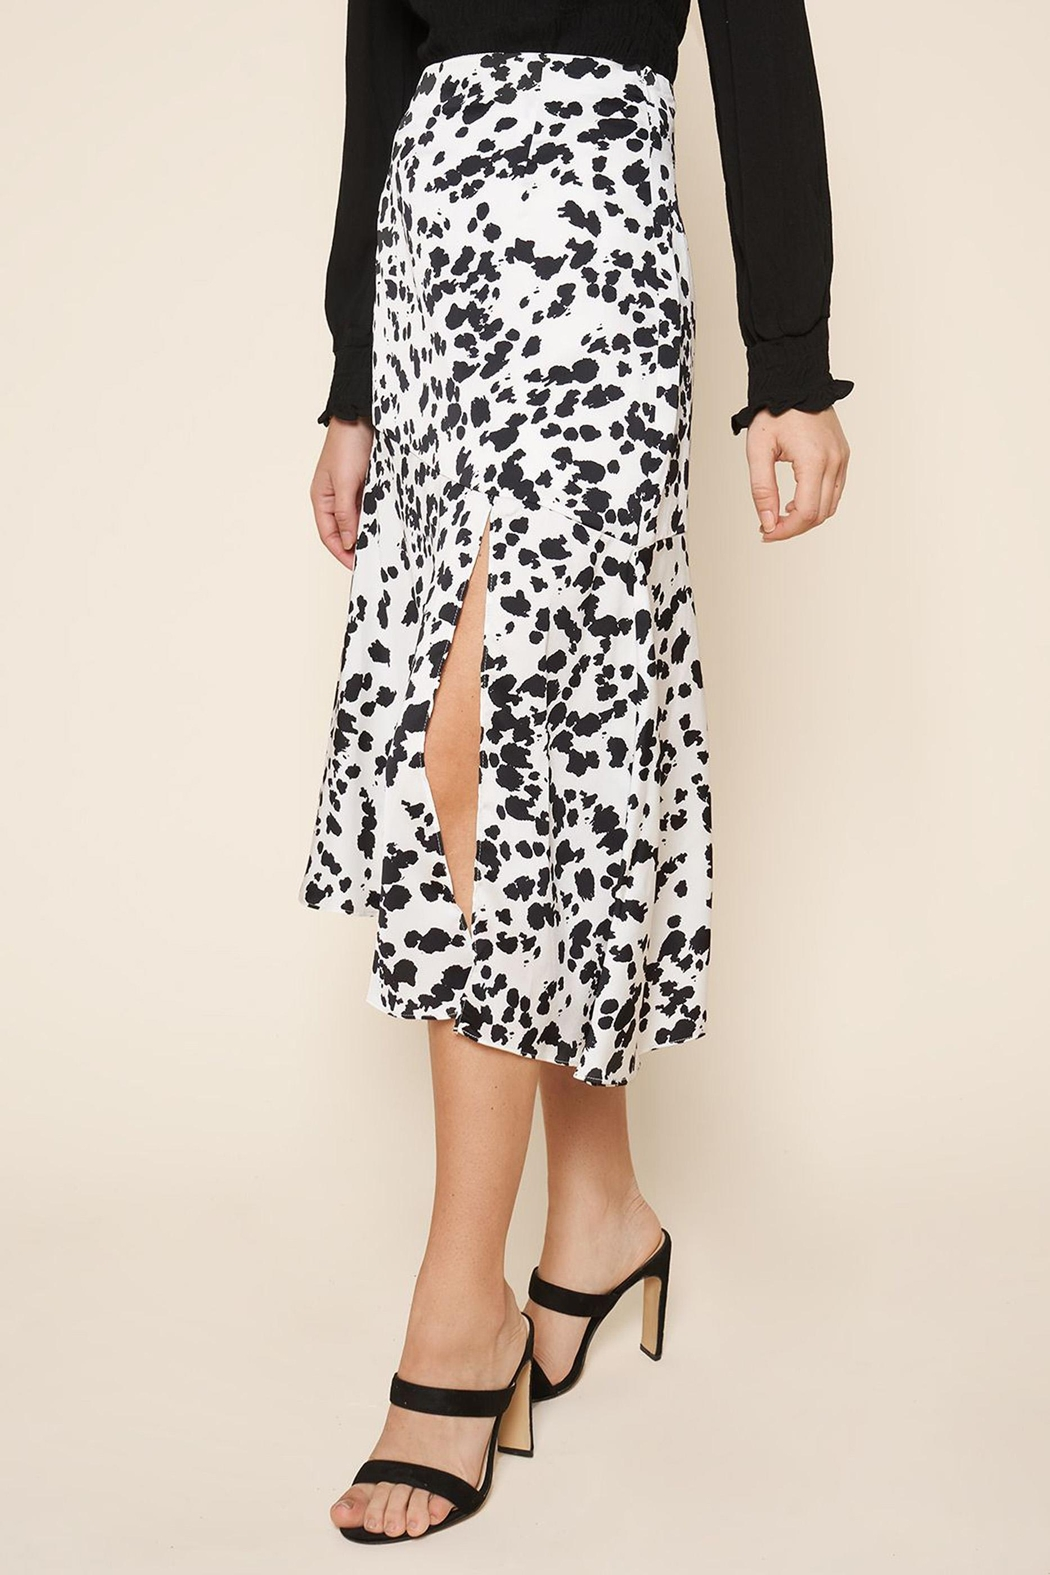 Sugarlips Dotted-Print Midi Skirt - Front Full Image